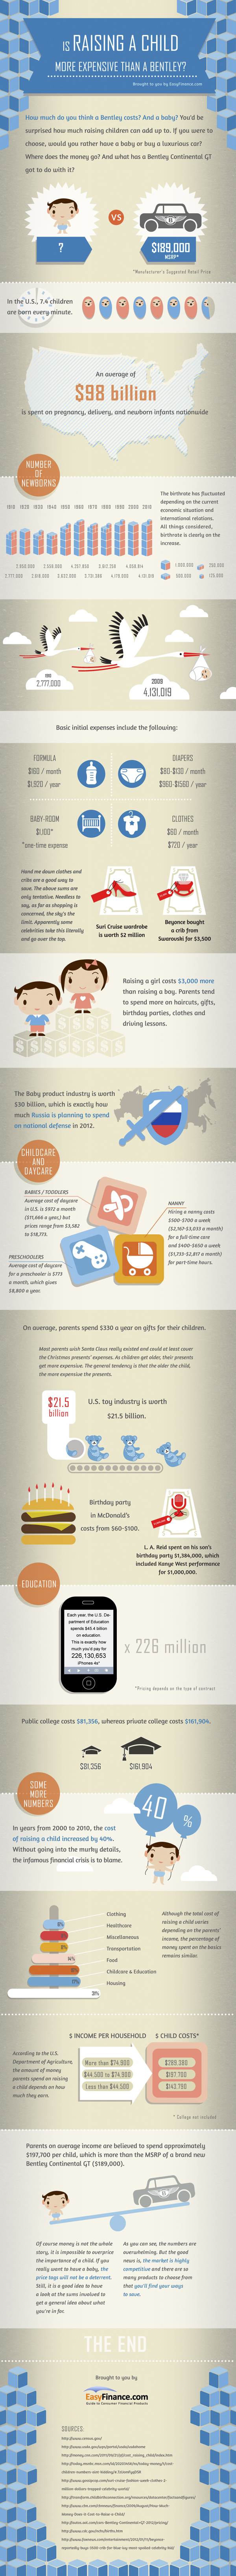 Is Raising a Child More Expensive Than a Bentley? (Infographic)